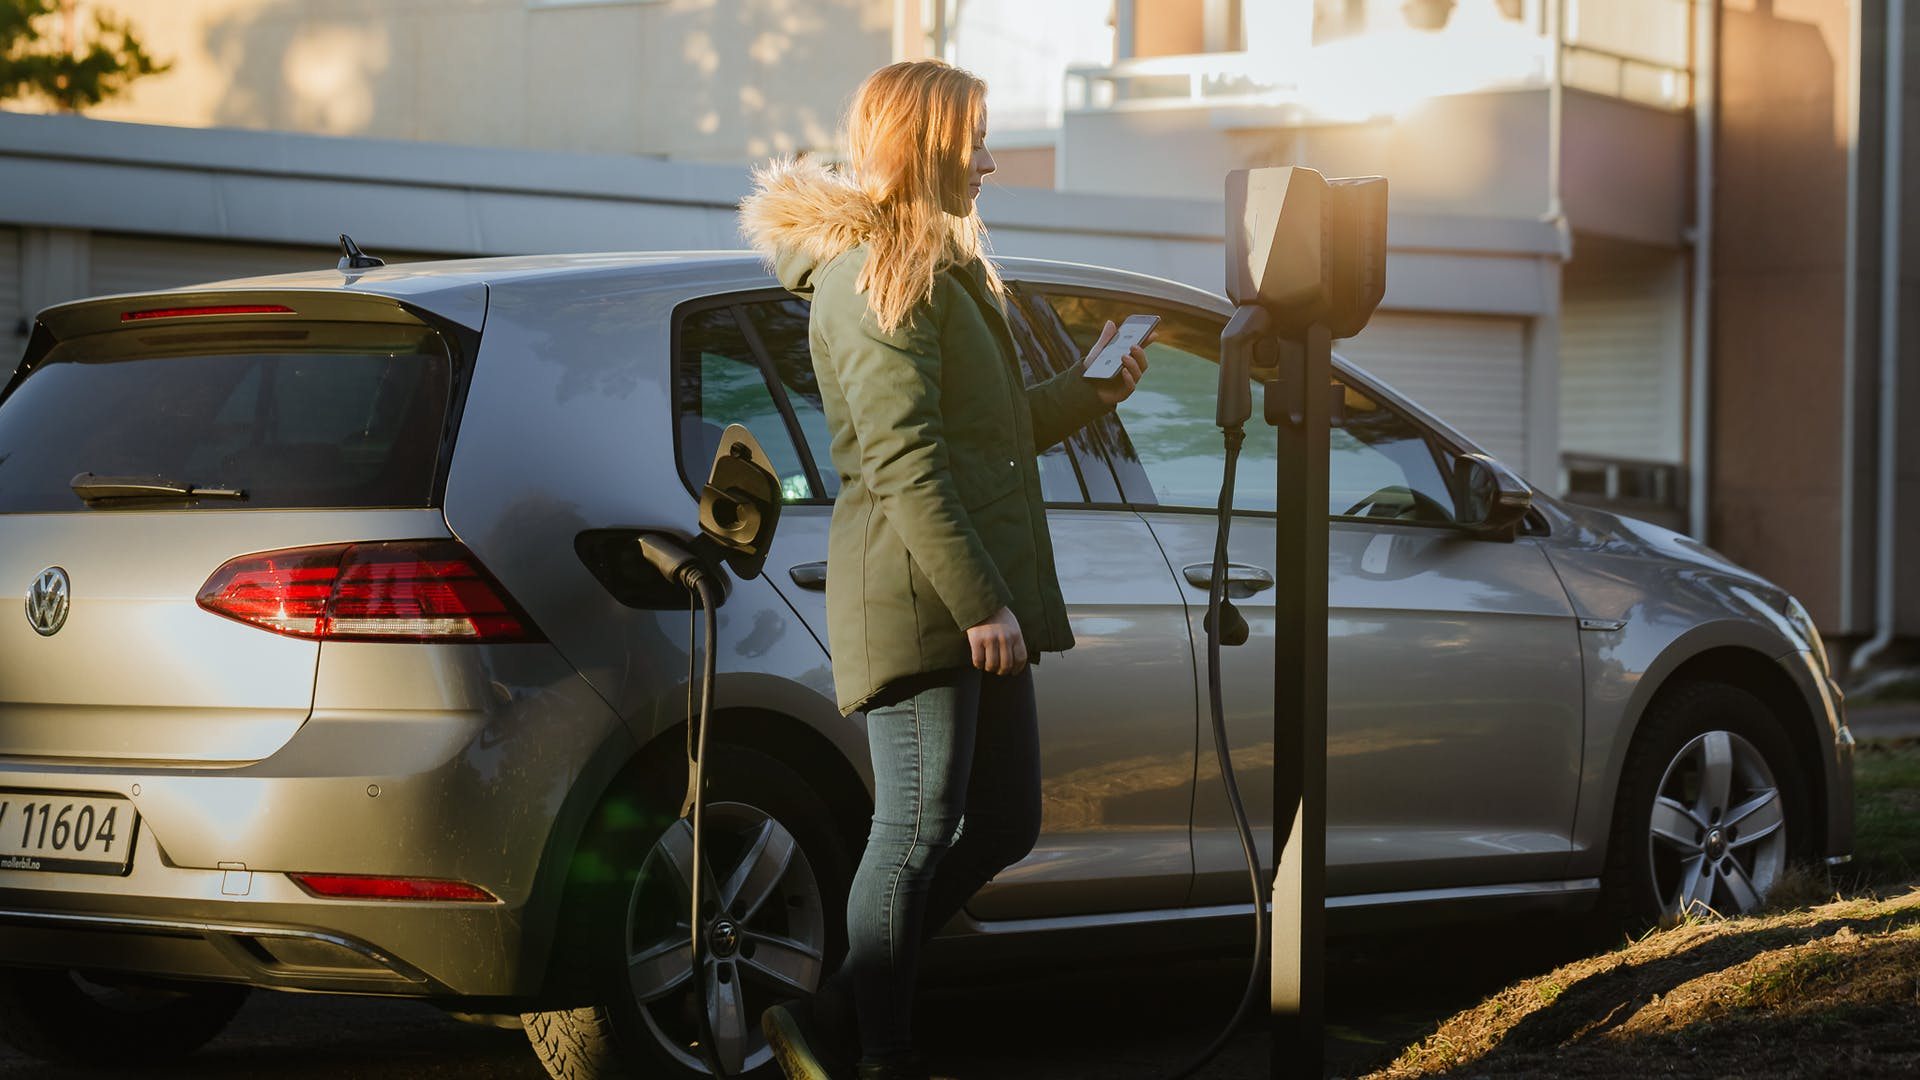 Woman Charging with Easee